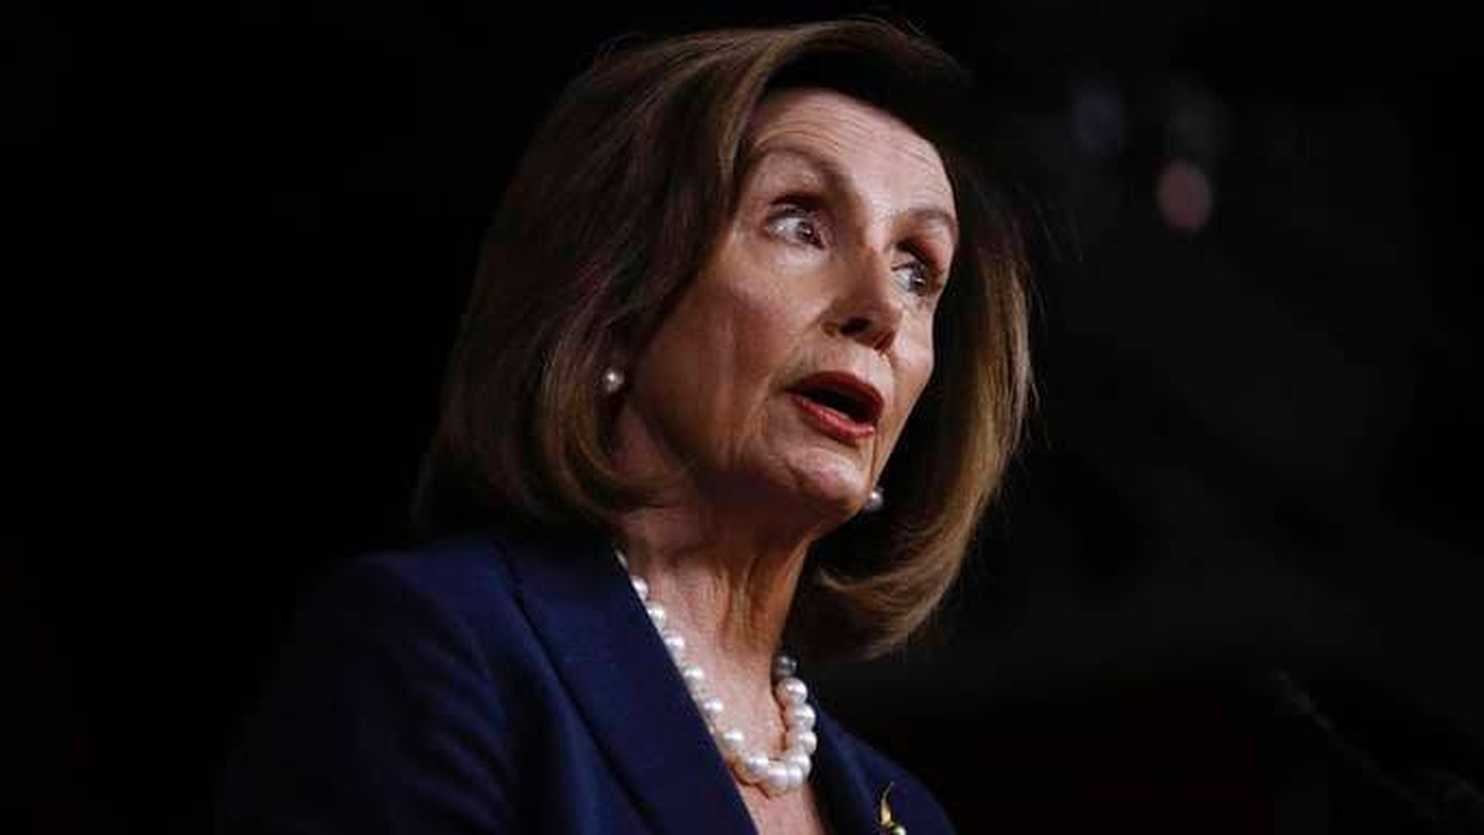 The Technology 202: Pelosi's Facebook slam reflects rising tensions between social media giant and Democrats